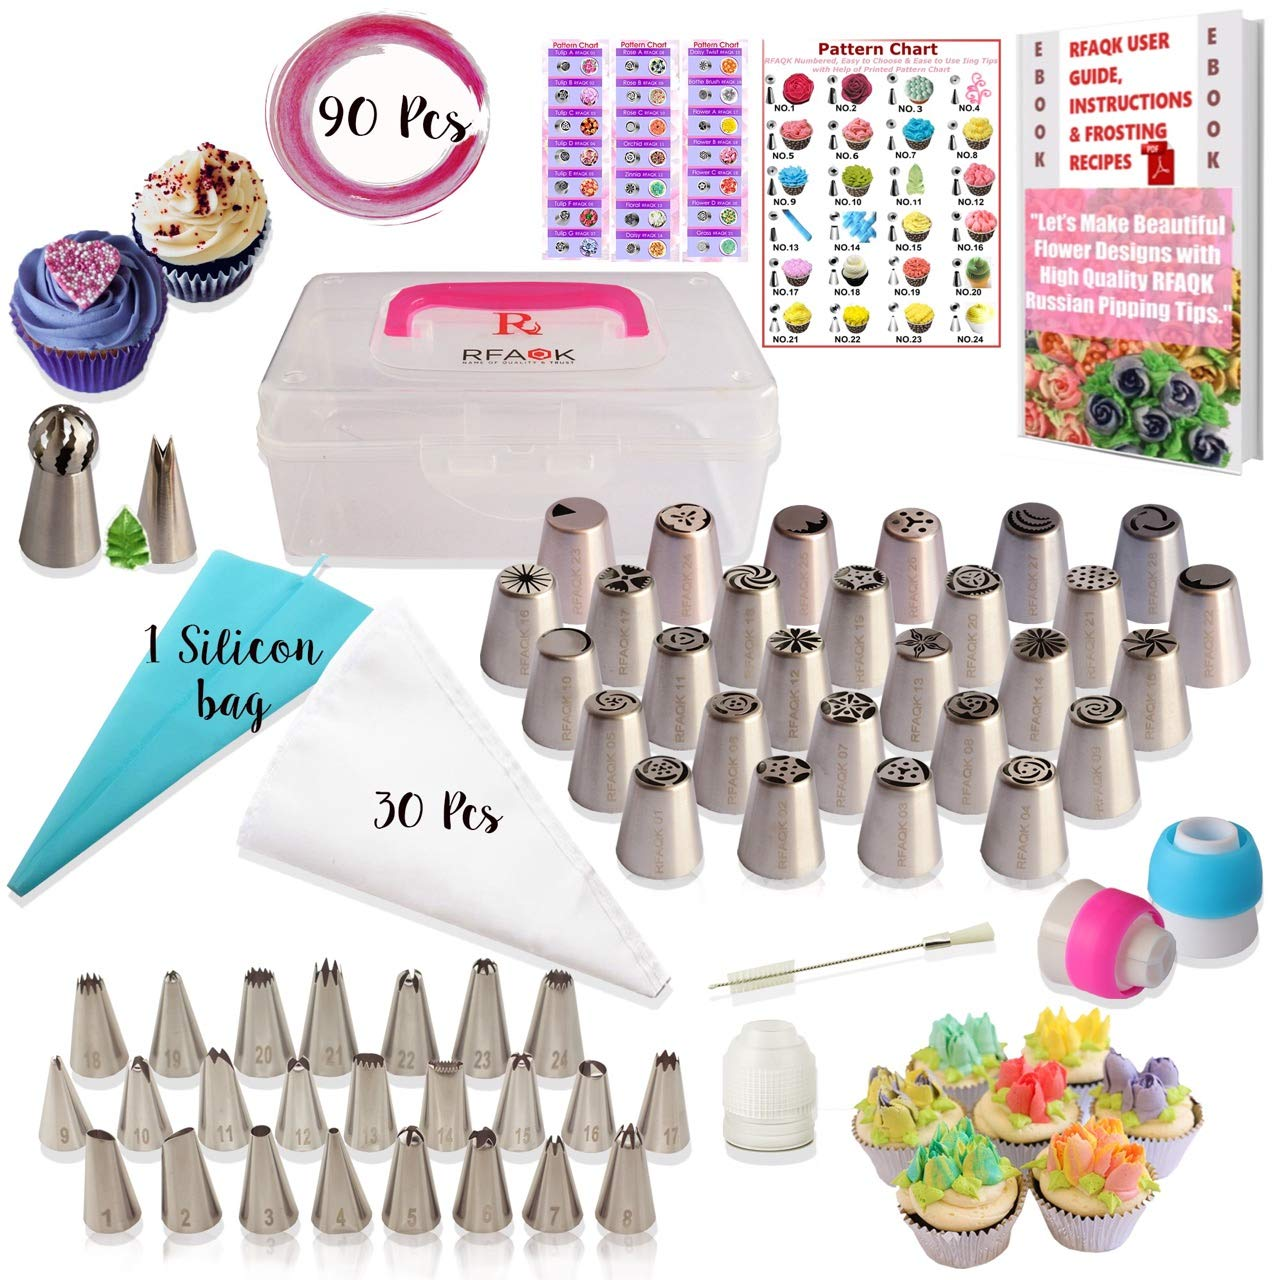 RFAQK- 90 Pcs Russian piping tips set with storage case – Cake decorating supplies kit – 54 Numbered easy to use icing nozzles (28 Russian + 25 Icing + 1 Ball tip) – Pattern chart, Ebook User Guide